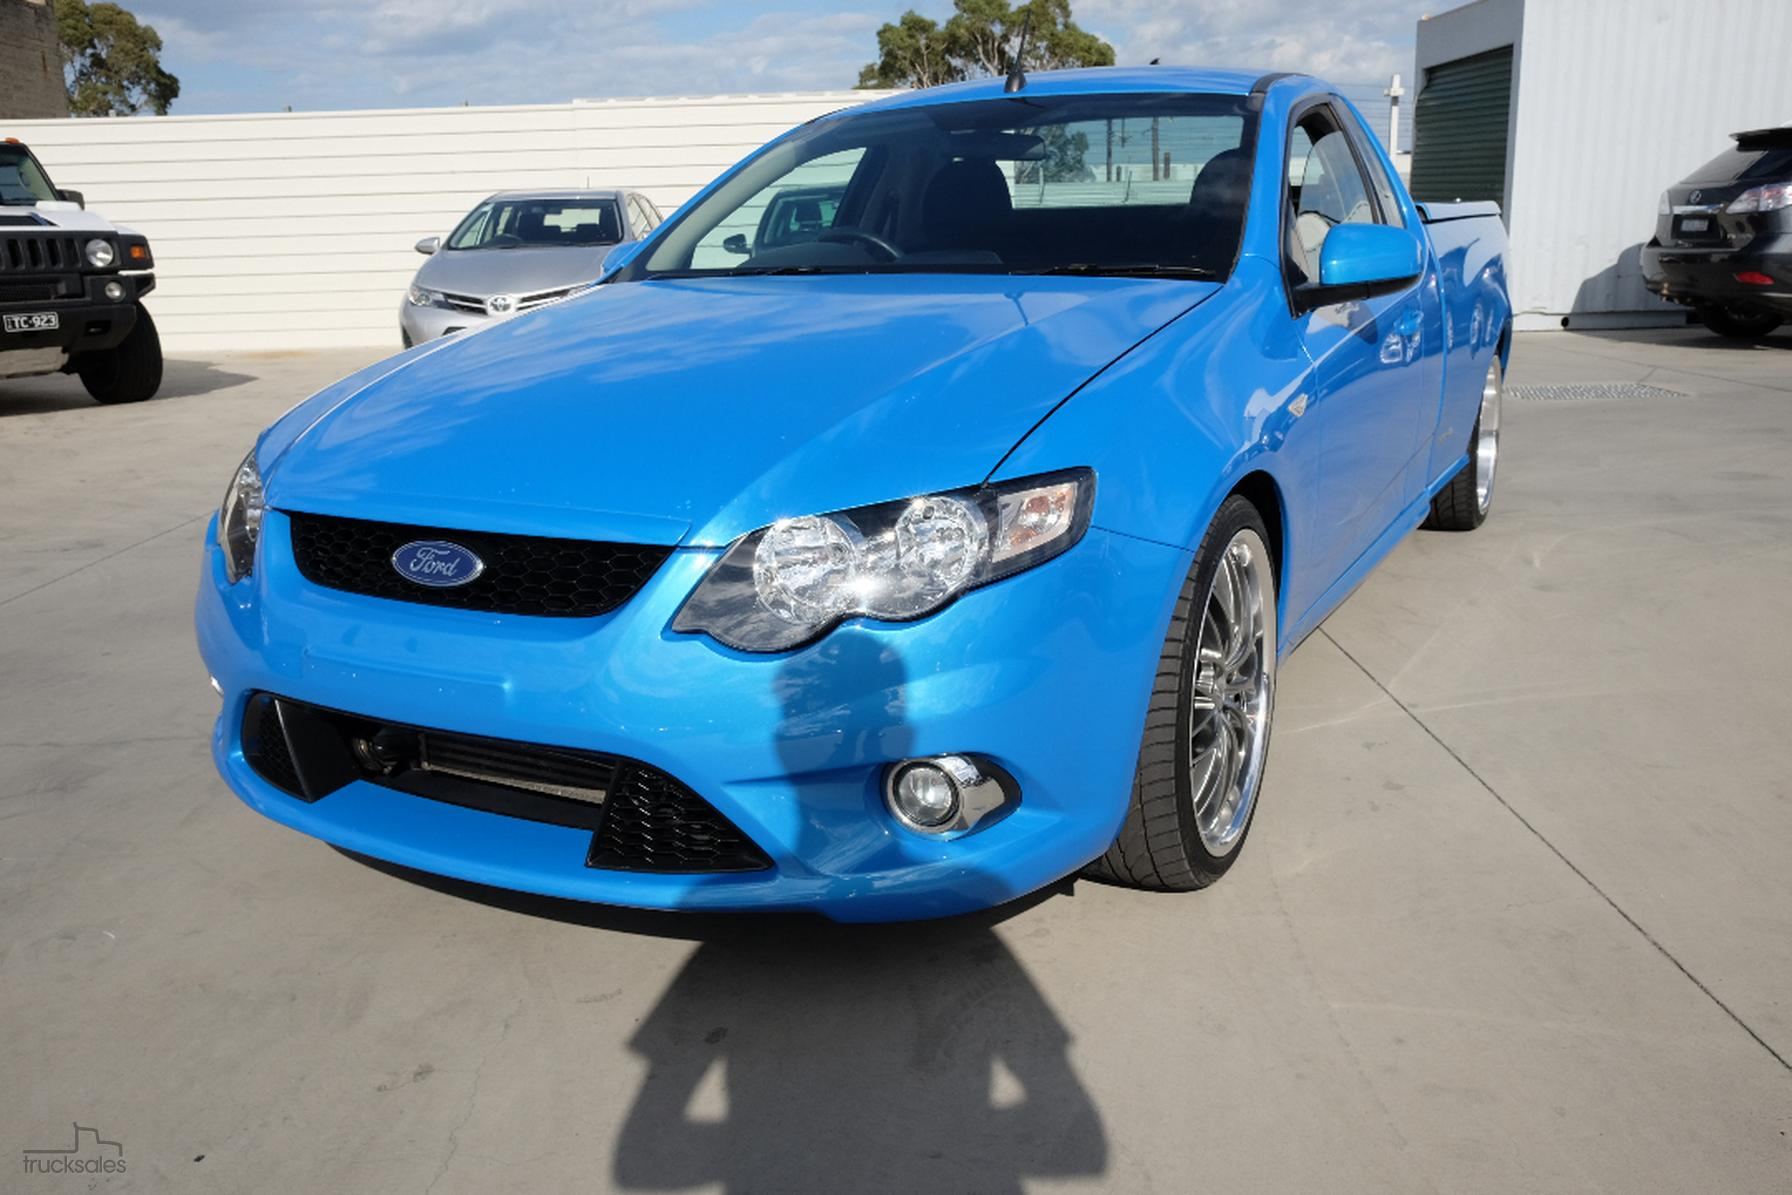 Fg Xr6 Turbo Manual0 100 | Wiring Library